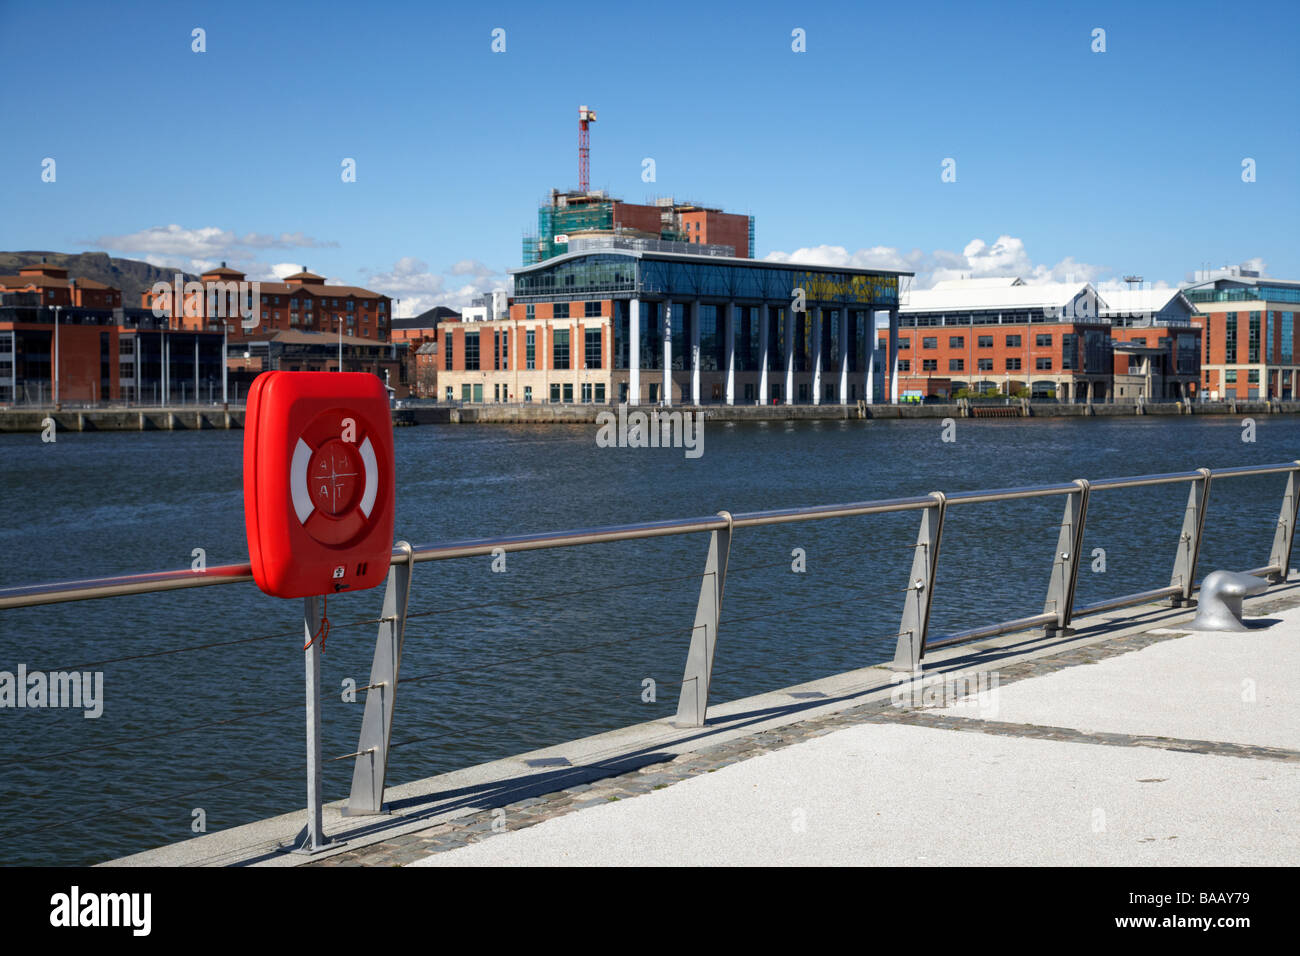 lifebelt on riverside walkway along the river lagan laganside belfast northern ireland - Stock Image